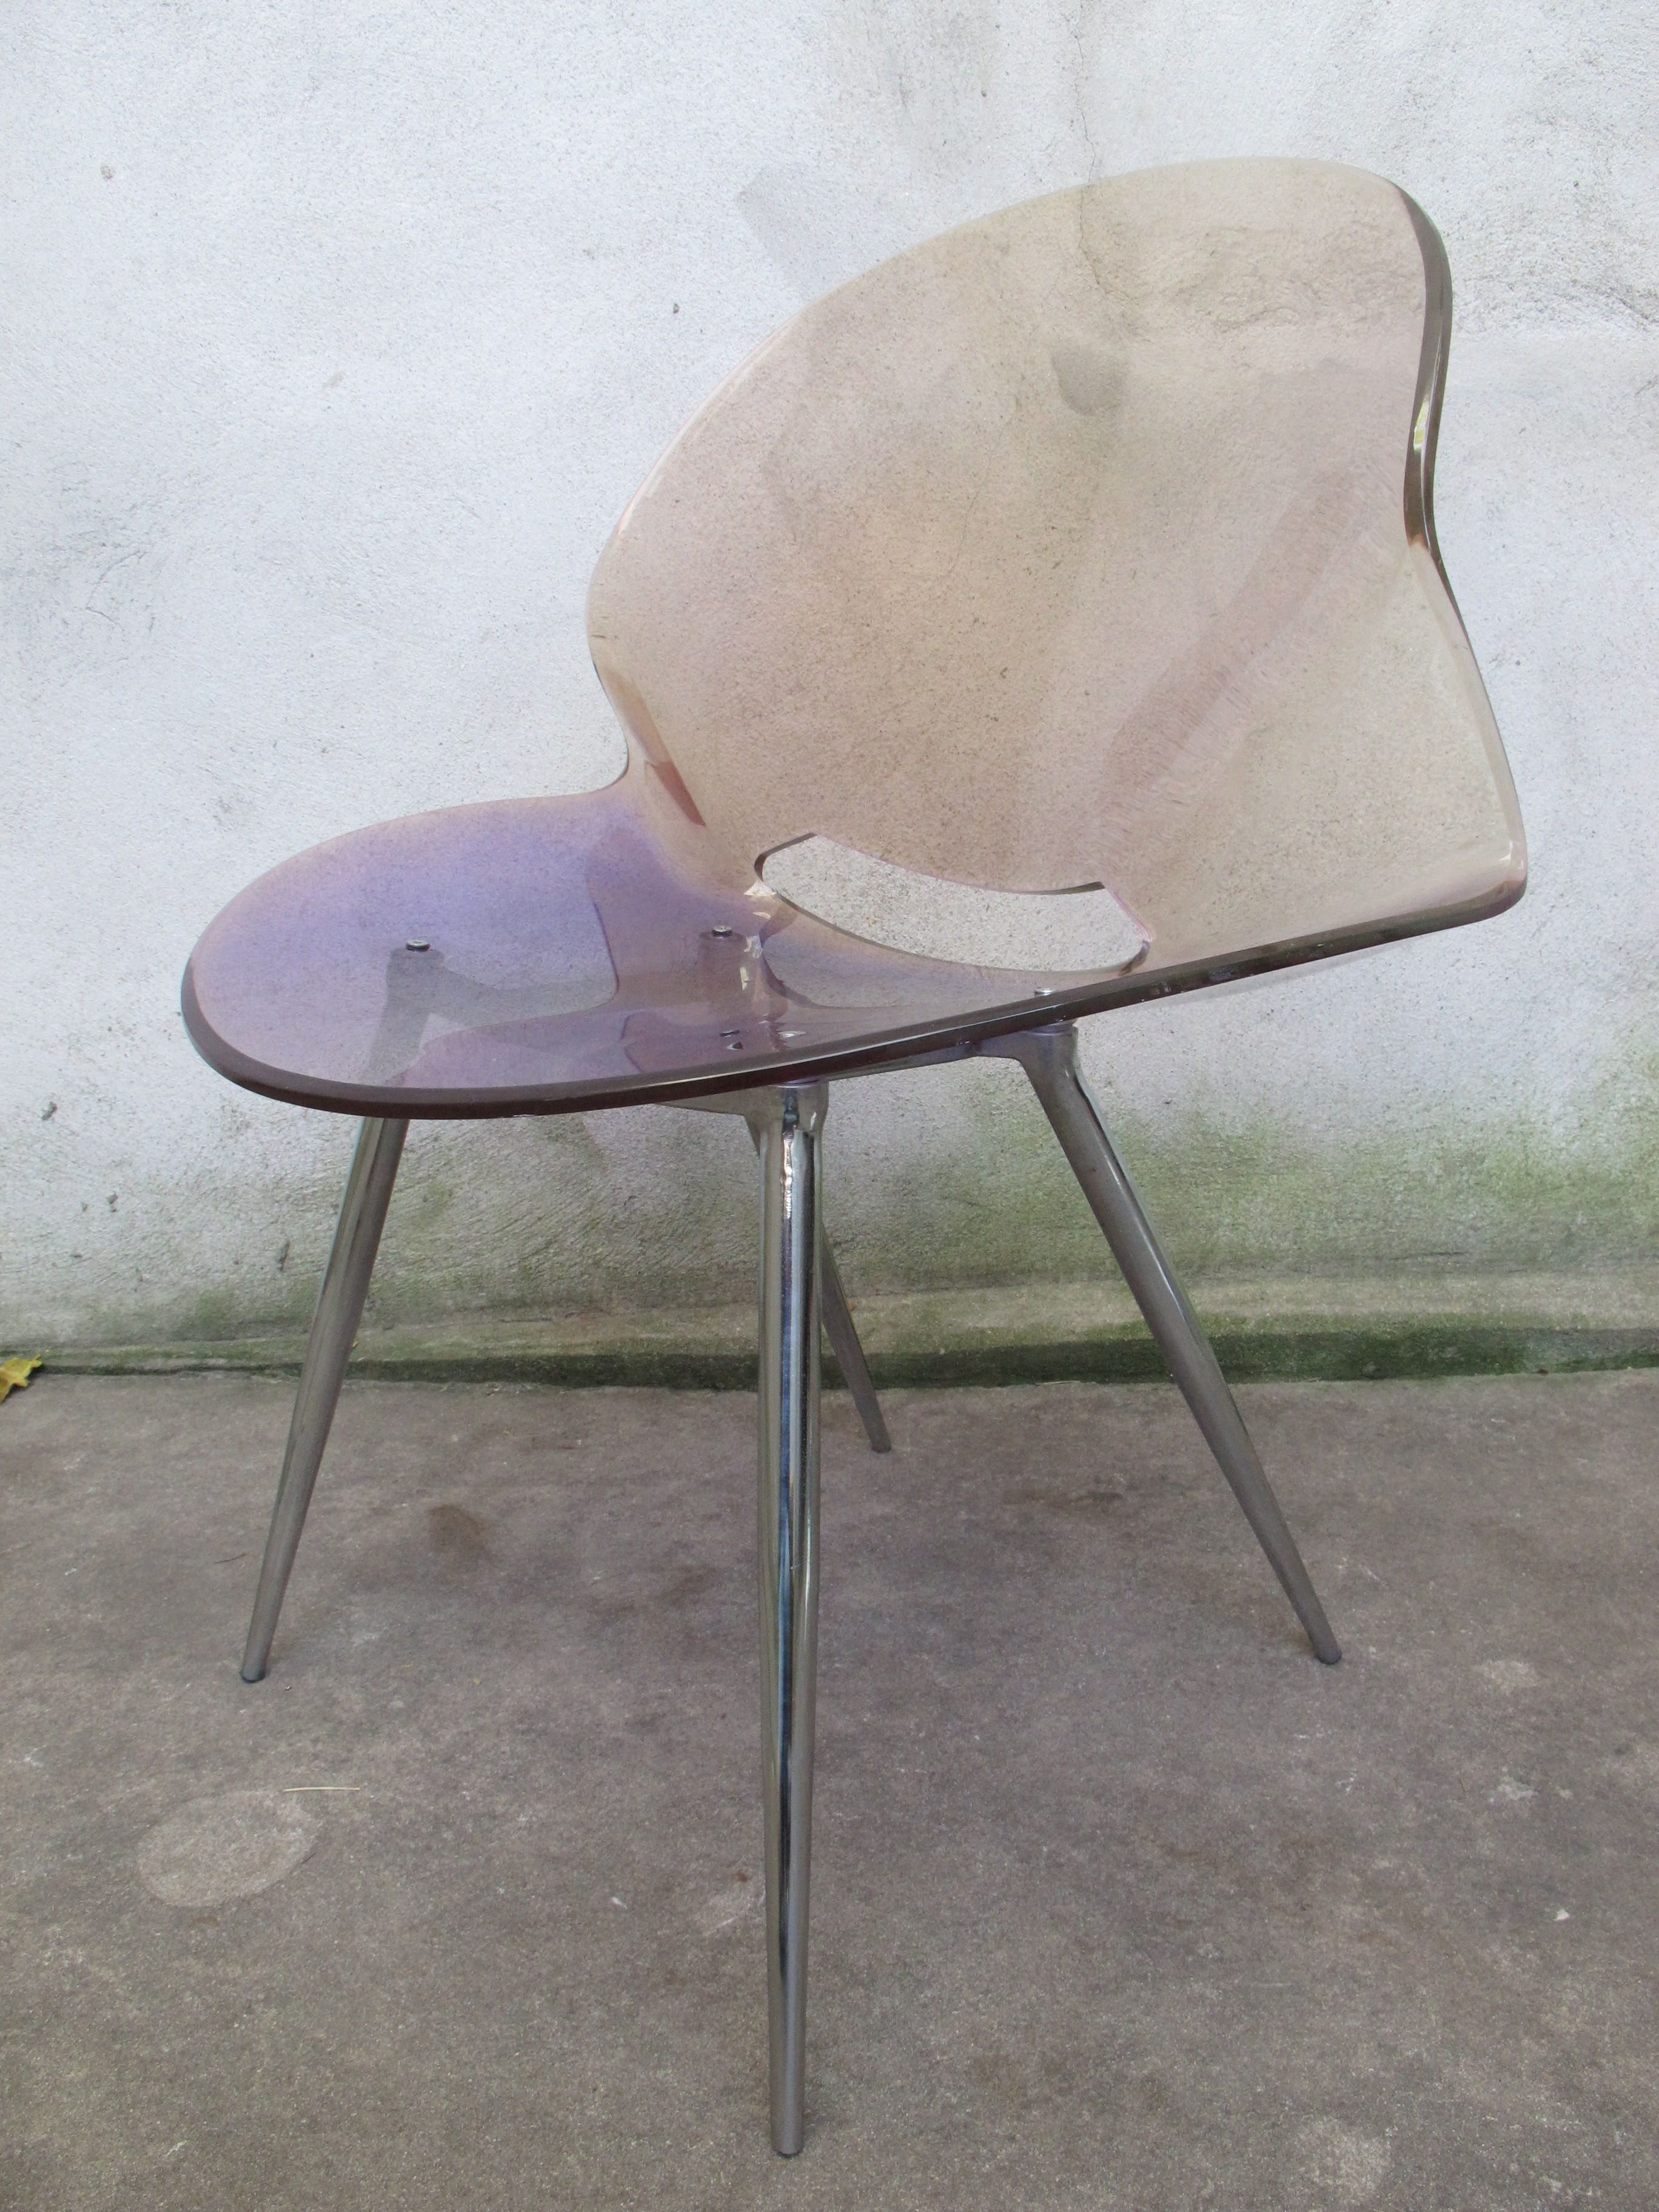 Mid Century Modern Plastic Chairs Revolving Wire Chair Clear Sold Items Adverts Vintage